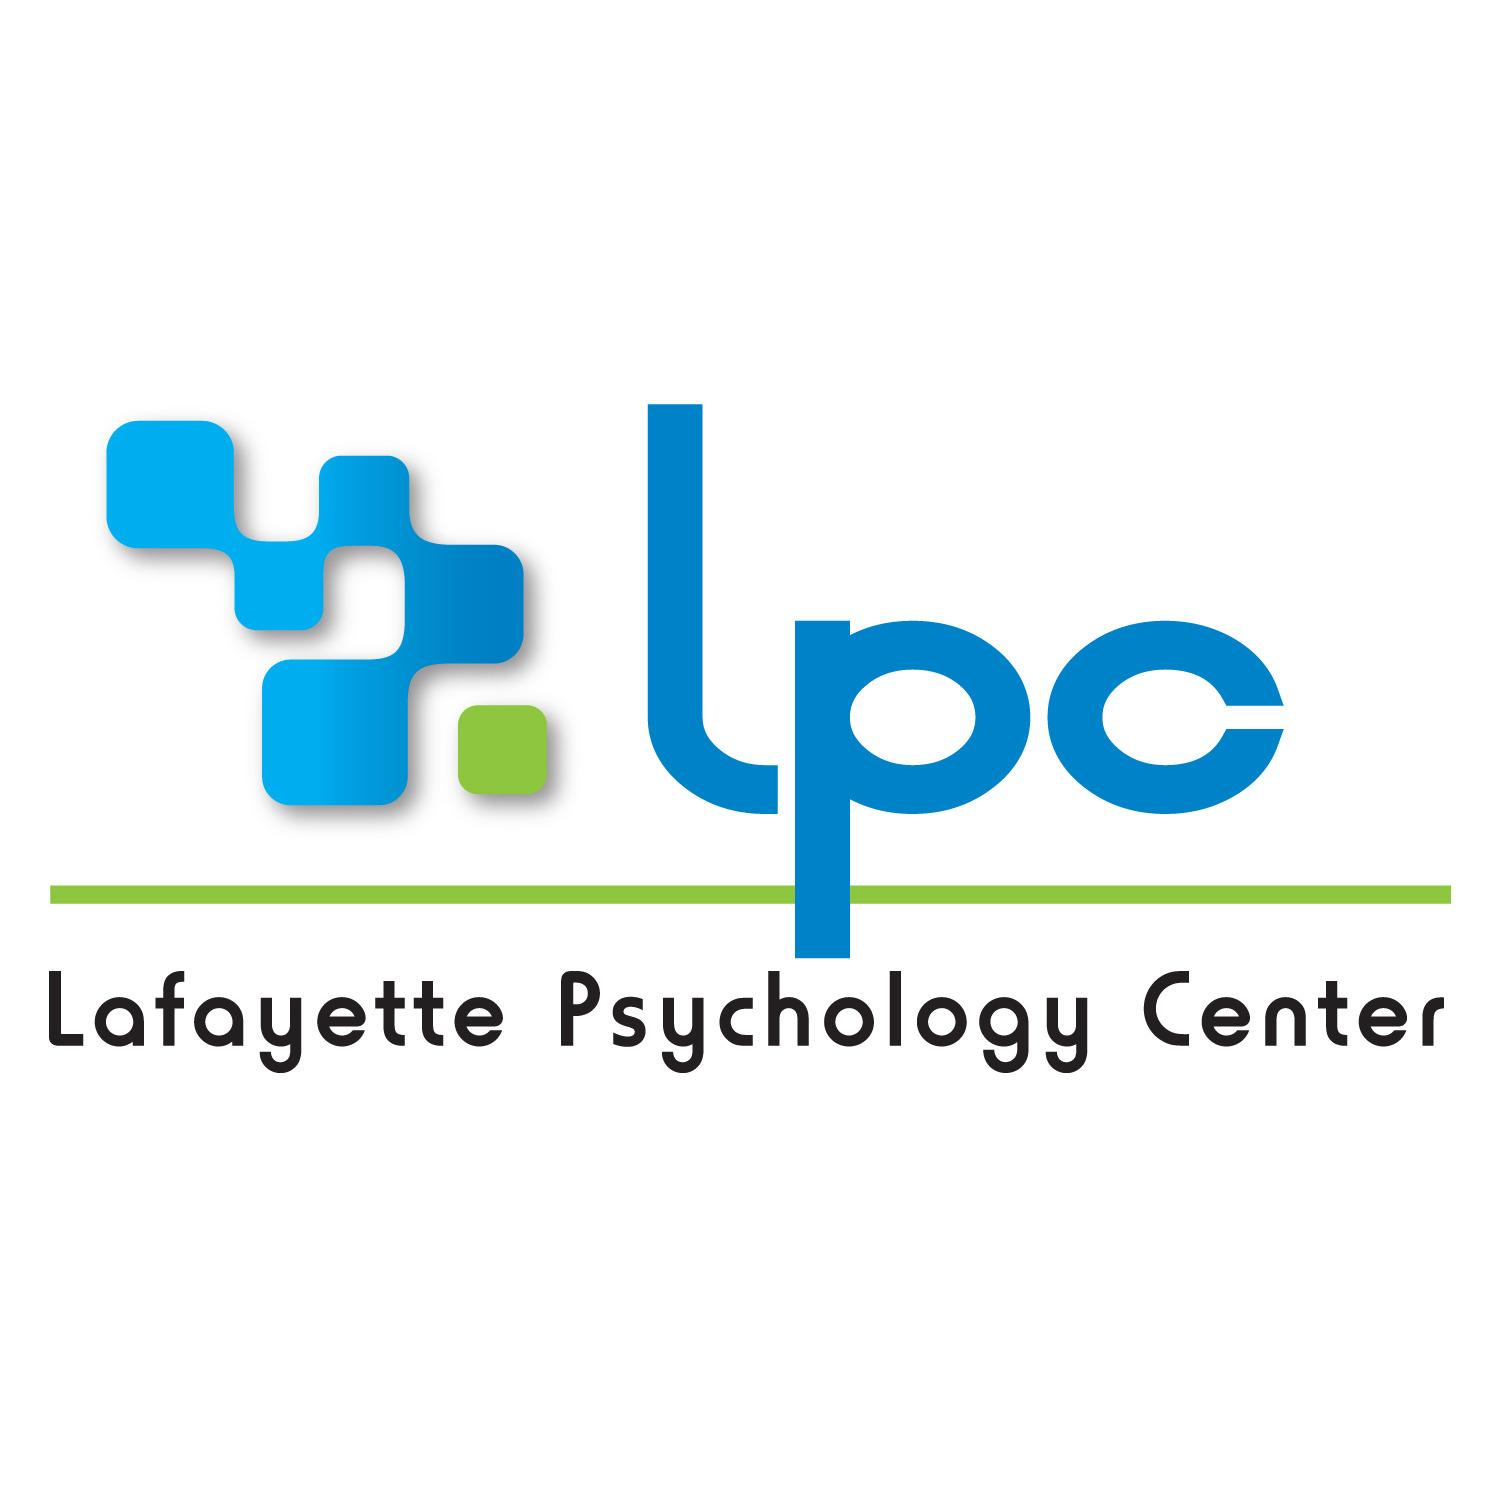 Lafayette Psychology Center